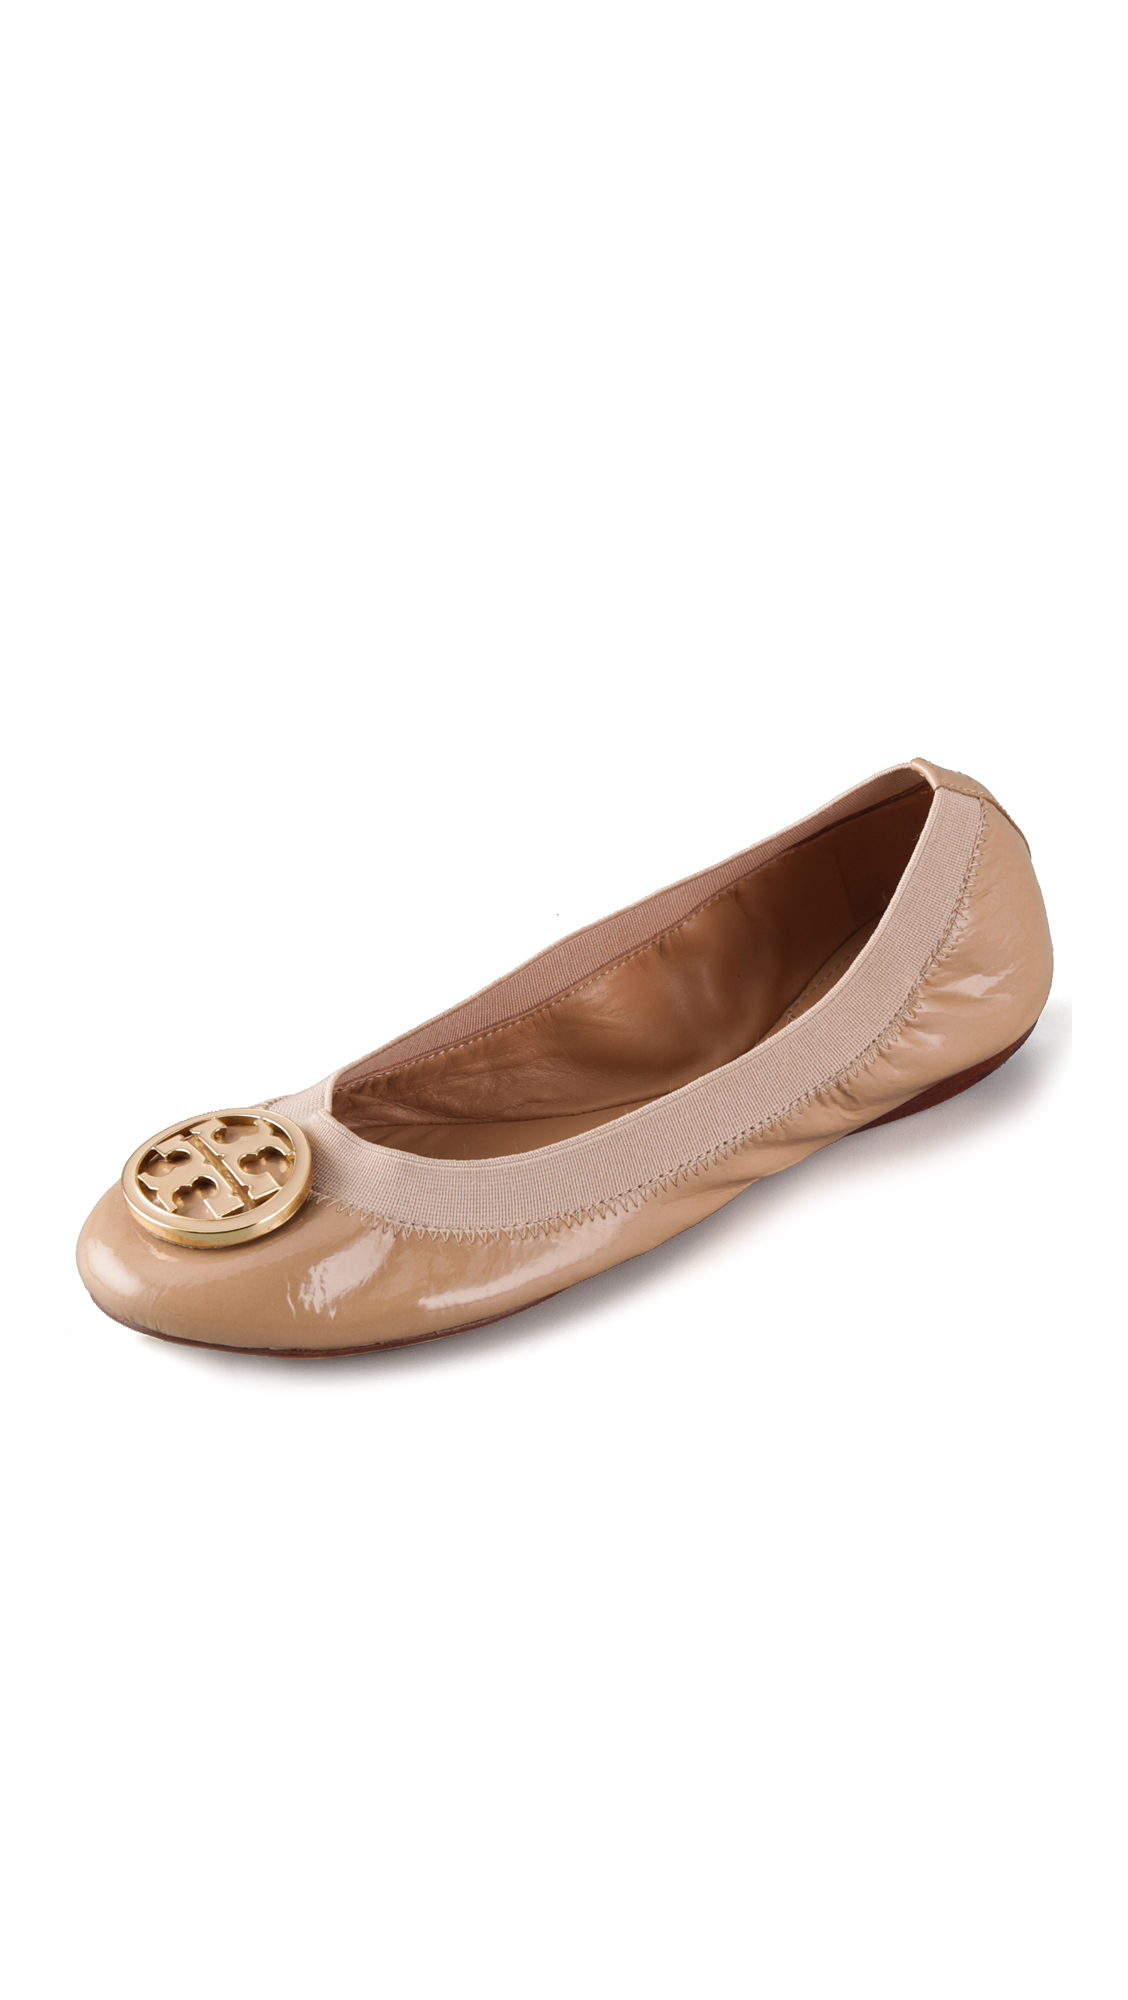 Browse Tory Burch best shoes inspirations straight from the Fall/Winter Collection and find the ideal must have piece for your casual everyday or evening glam look. Buy the Fall/Winter collection of Tory Burch shoes online and get free shipping worldwide.